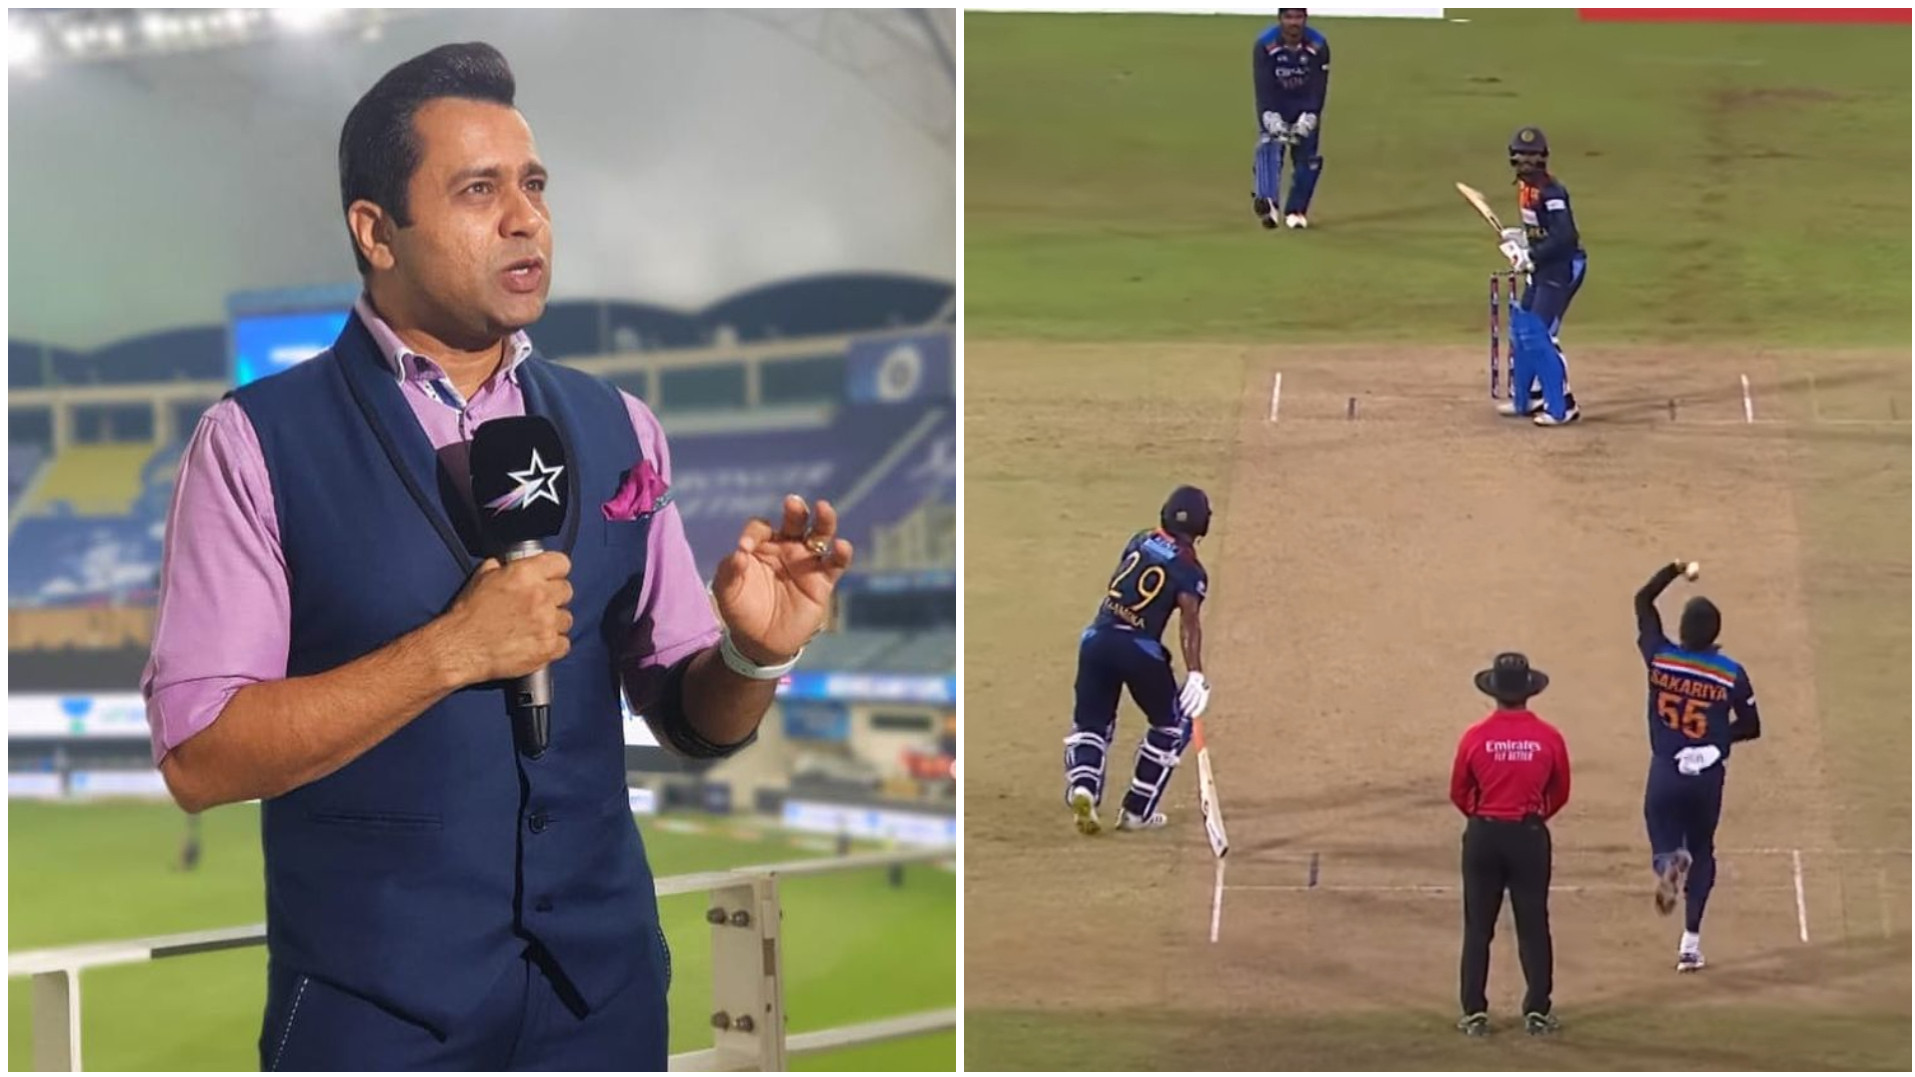 SL v IND 2021: Aakash Chopra reacts to the wide-ball controversy in second T20I